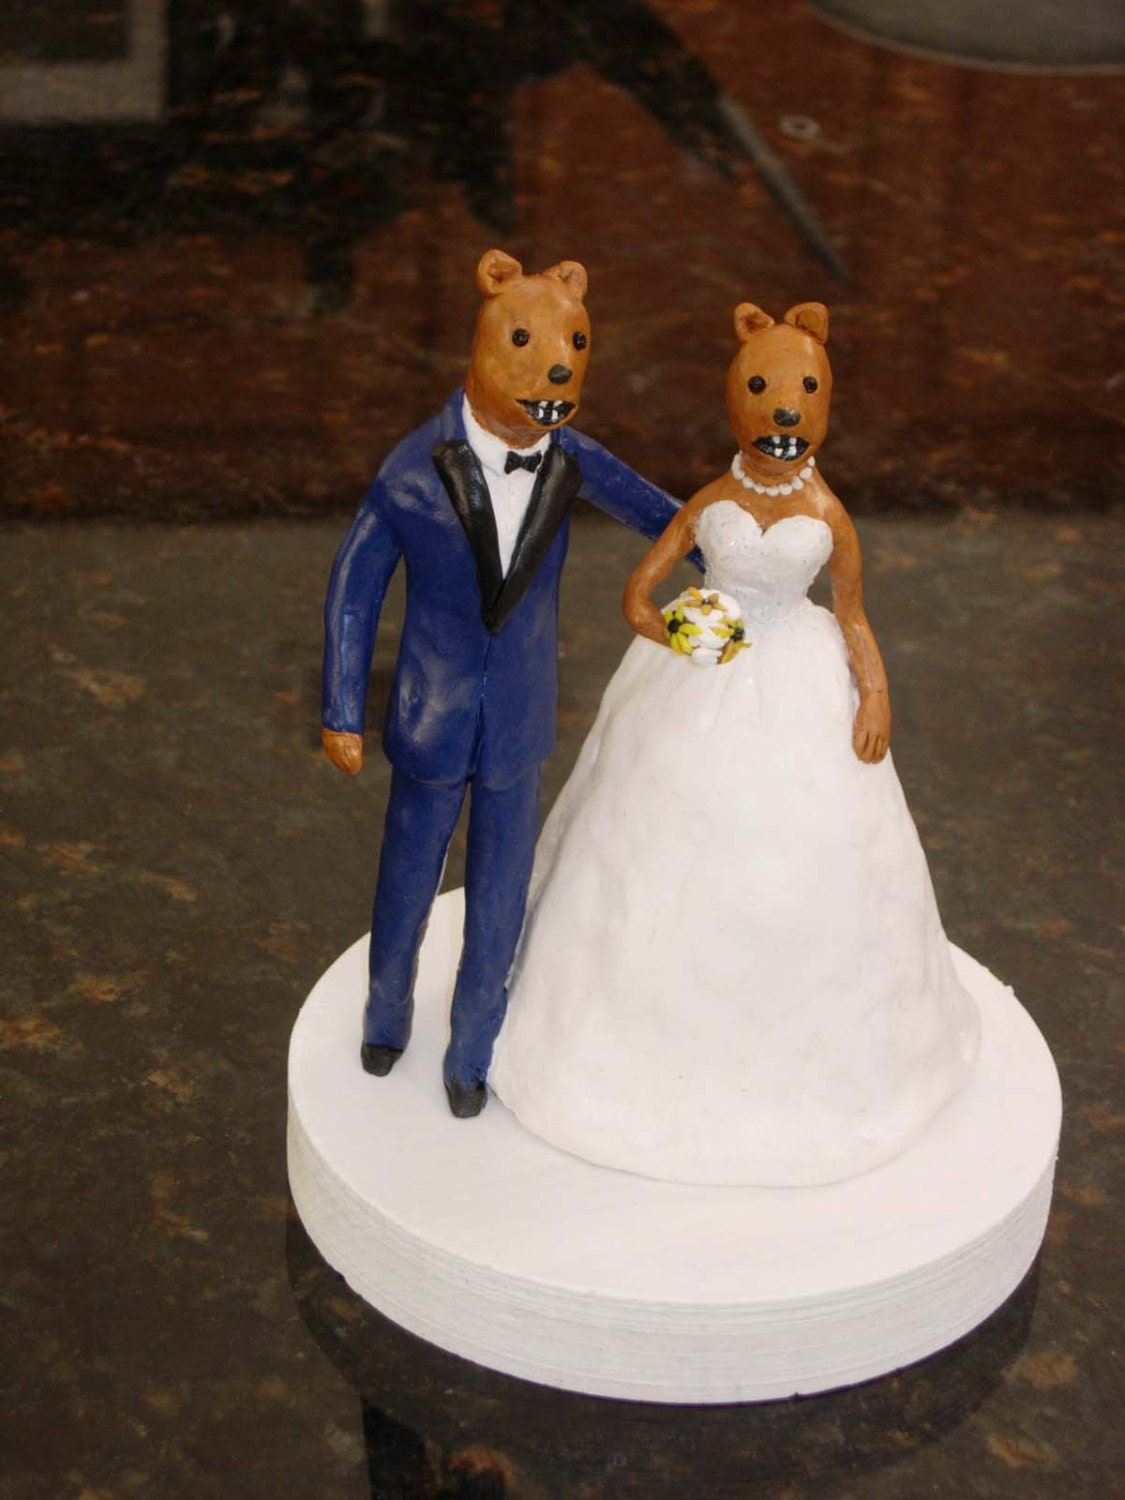 Custom Cake Topper with Mascots in Personalized Wedding Attire